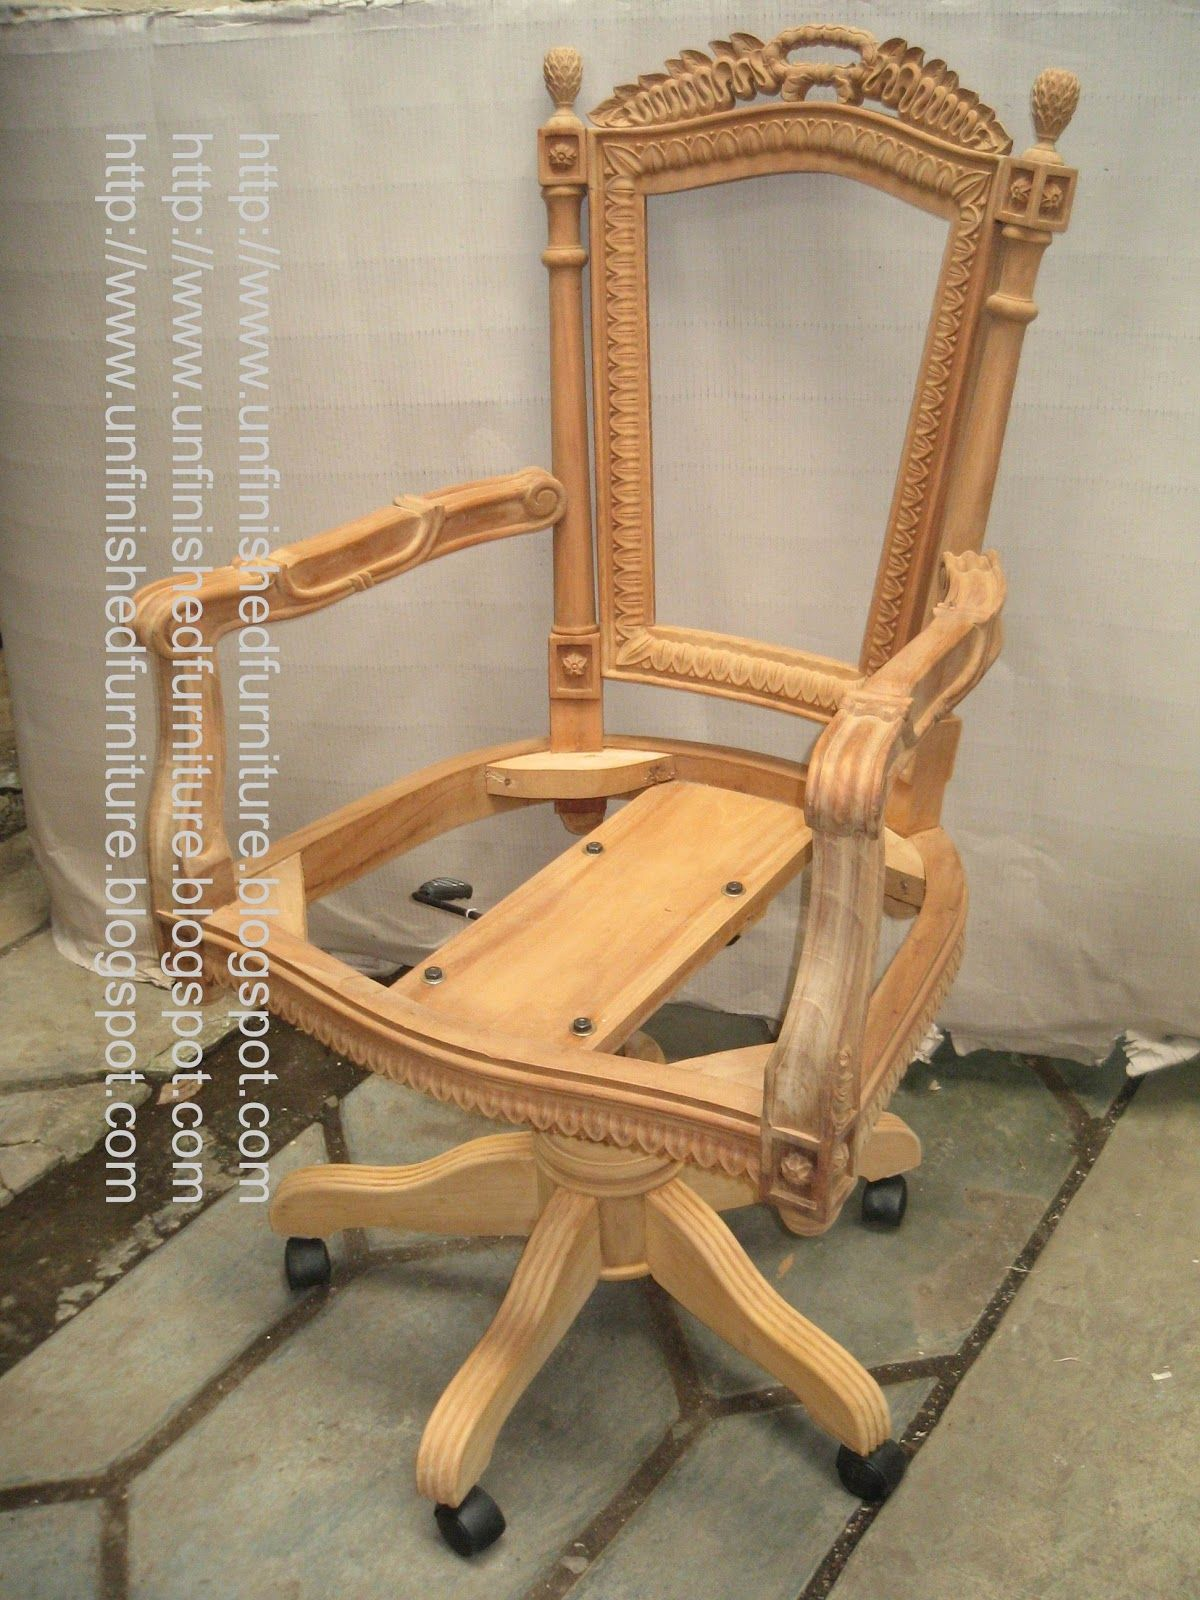 Unfinished Classic Furniture Classic Chair Wooden Frame Classic Chair  Mahogany Indonesia Furniture Supplier Classic Reproduction Furniture